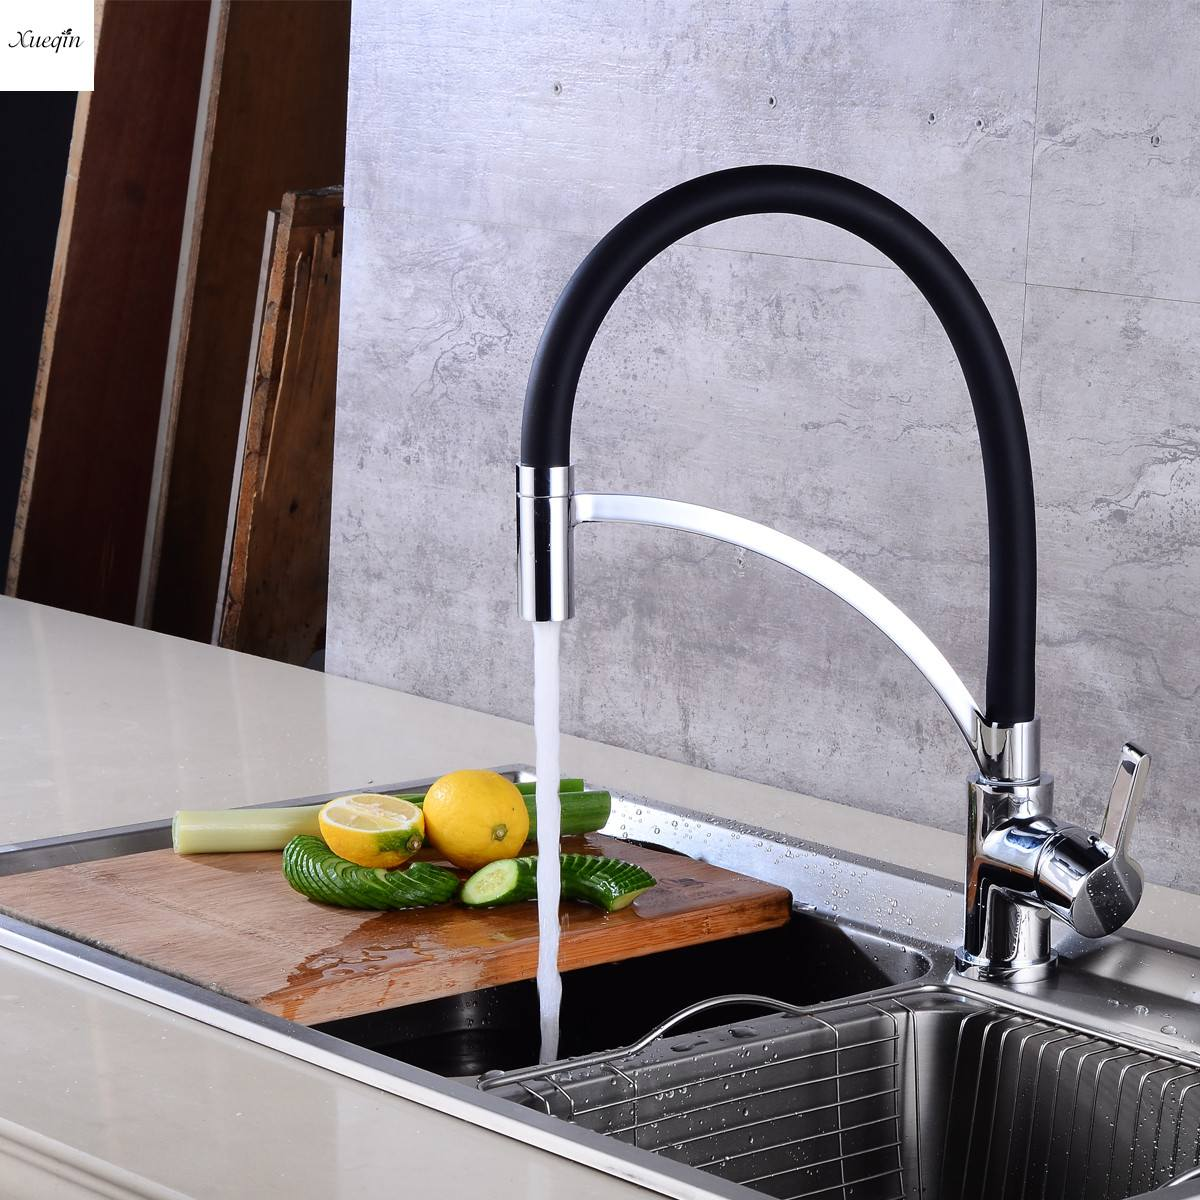 Silver Copper Black Rubber Kitchen Sink Faucet 360 Rotating Pull Out Basin Faucet Spout Single Handle Cold And Hot Mixer TapSilver Copper Black Rubber Kitchen Sink Faucet 360 Rotating Pull Out Basin Faucet Spout Single Handle Cold And Hot Mixer Tap